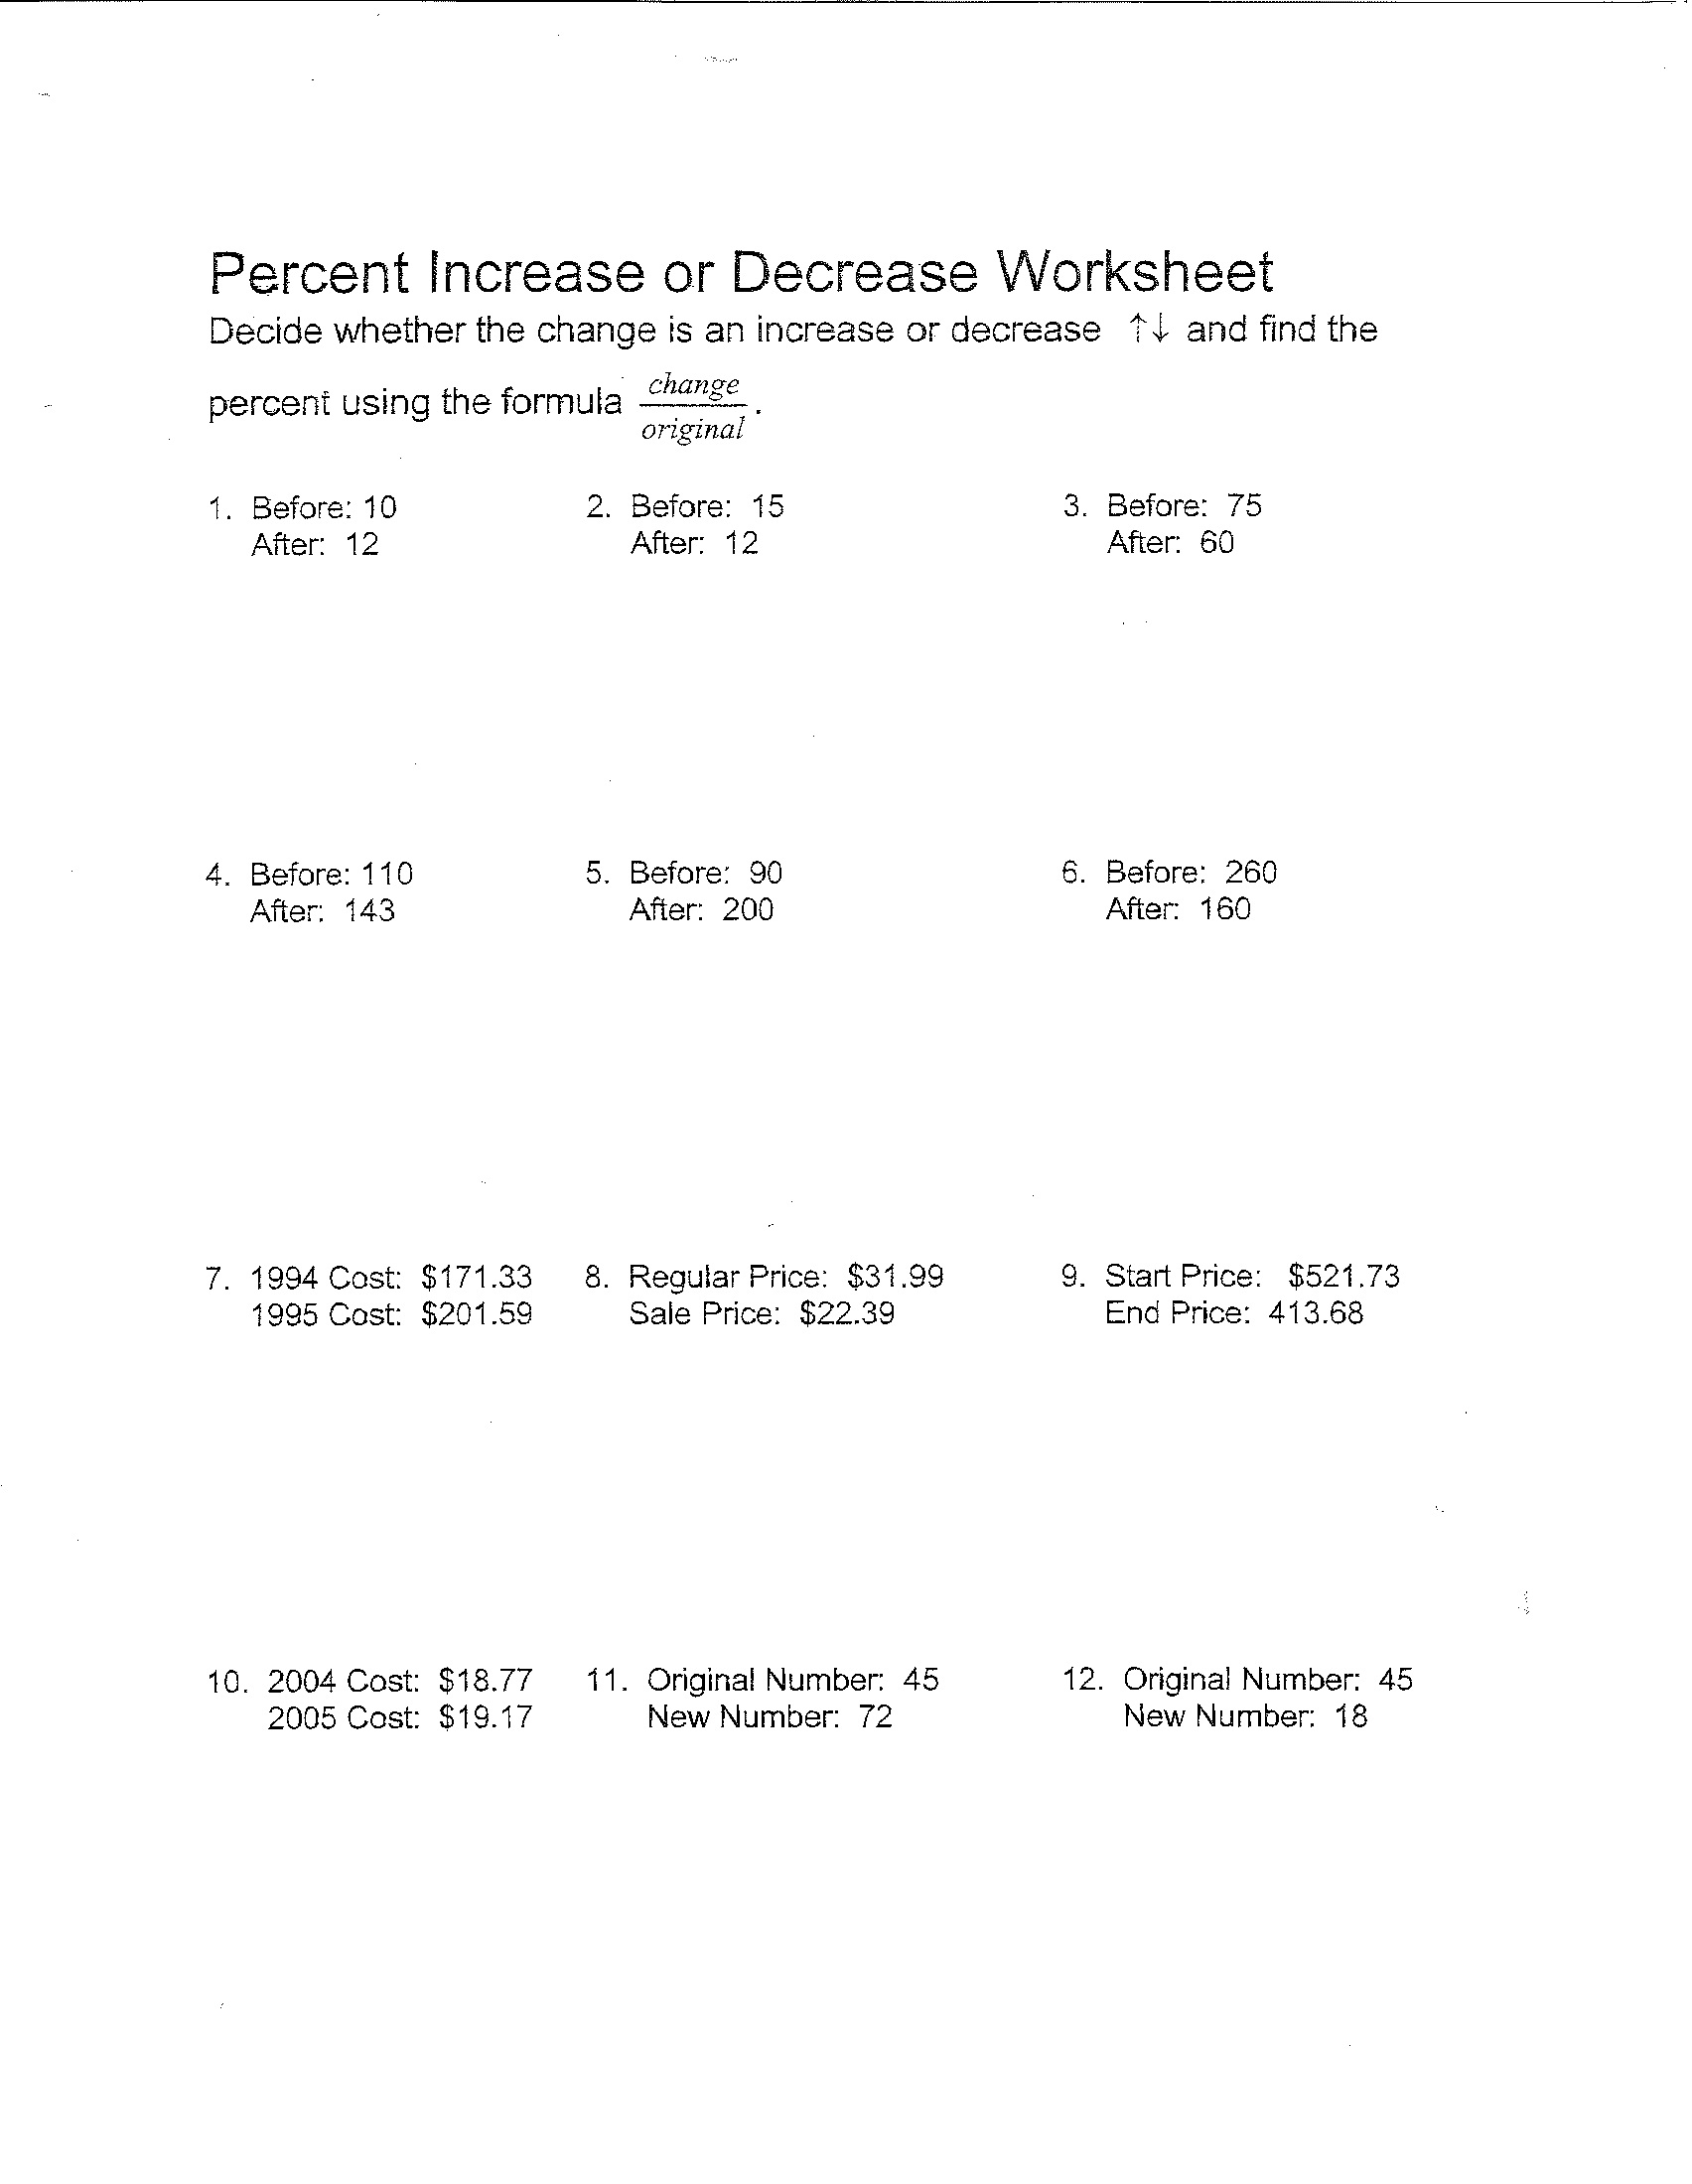 Worksheet Percent Increase And Decrease Worksheets Grass